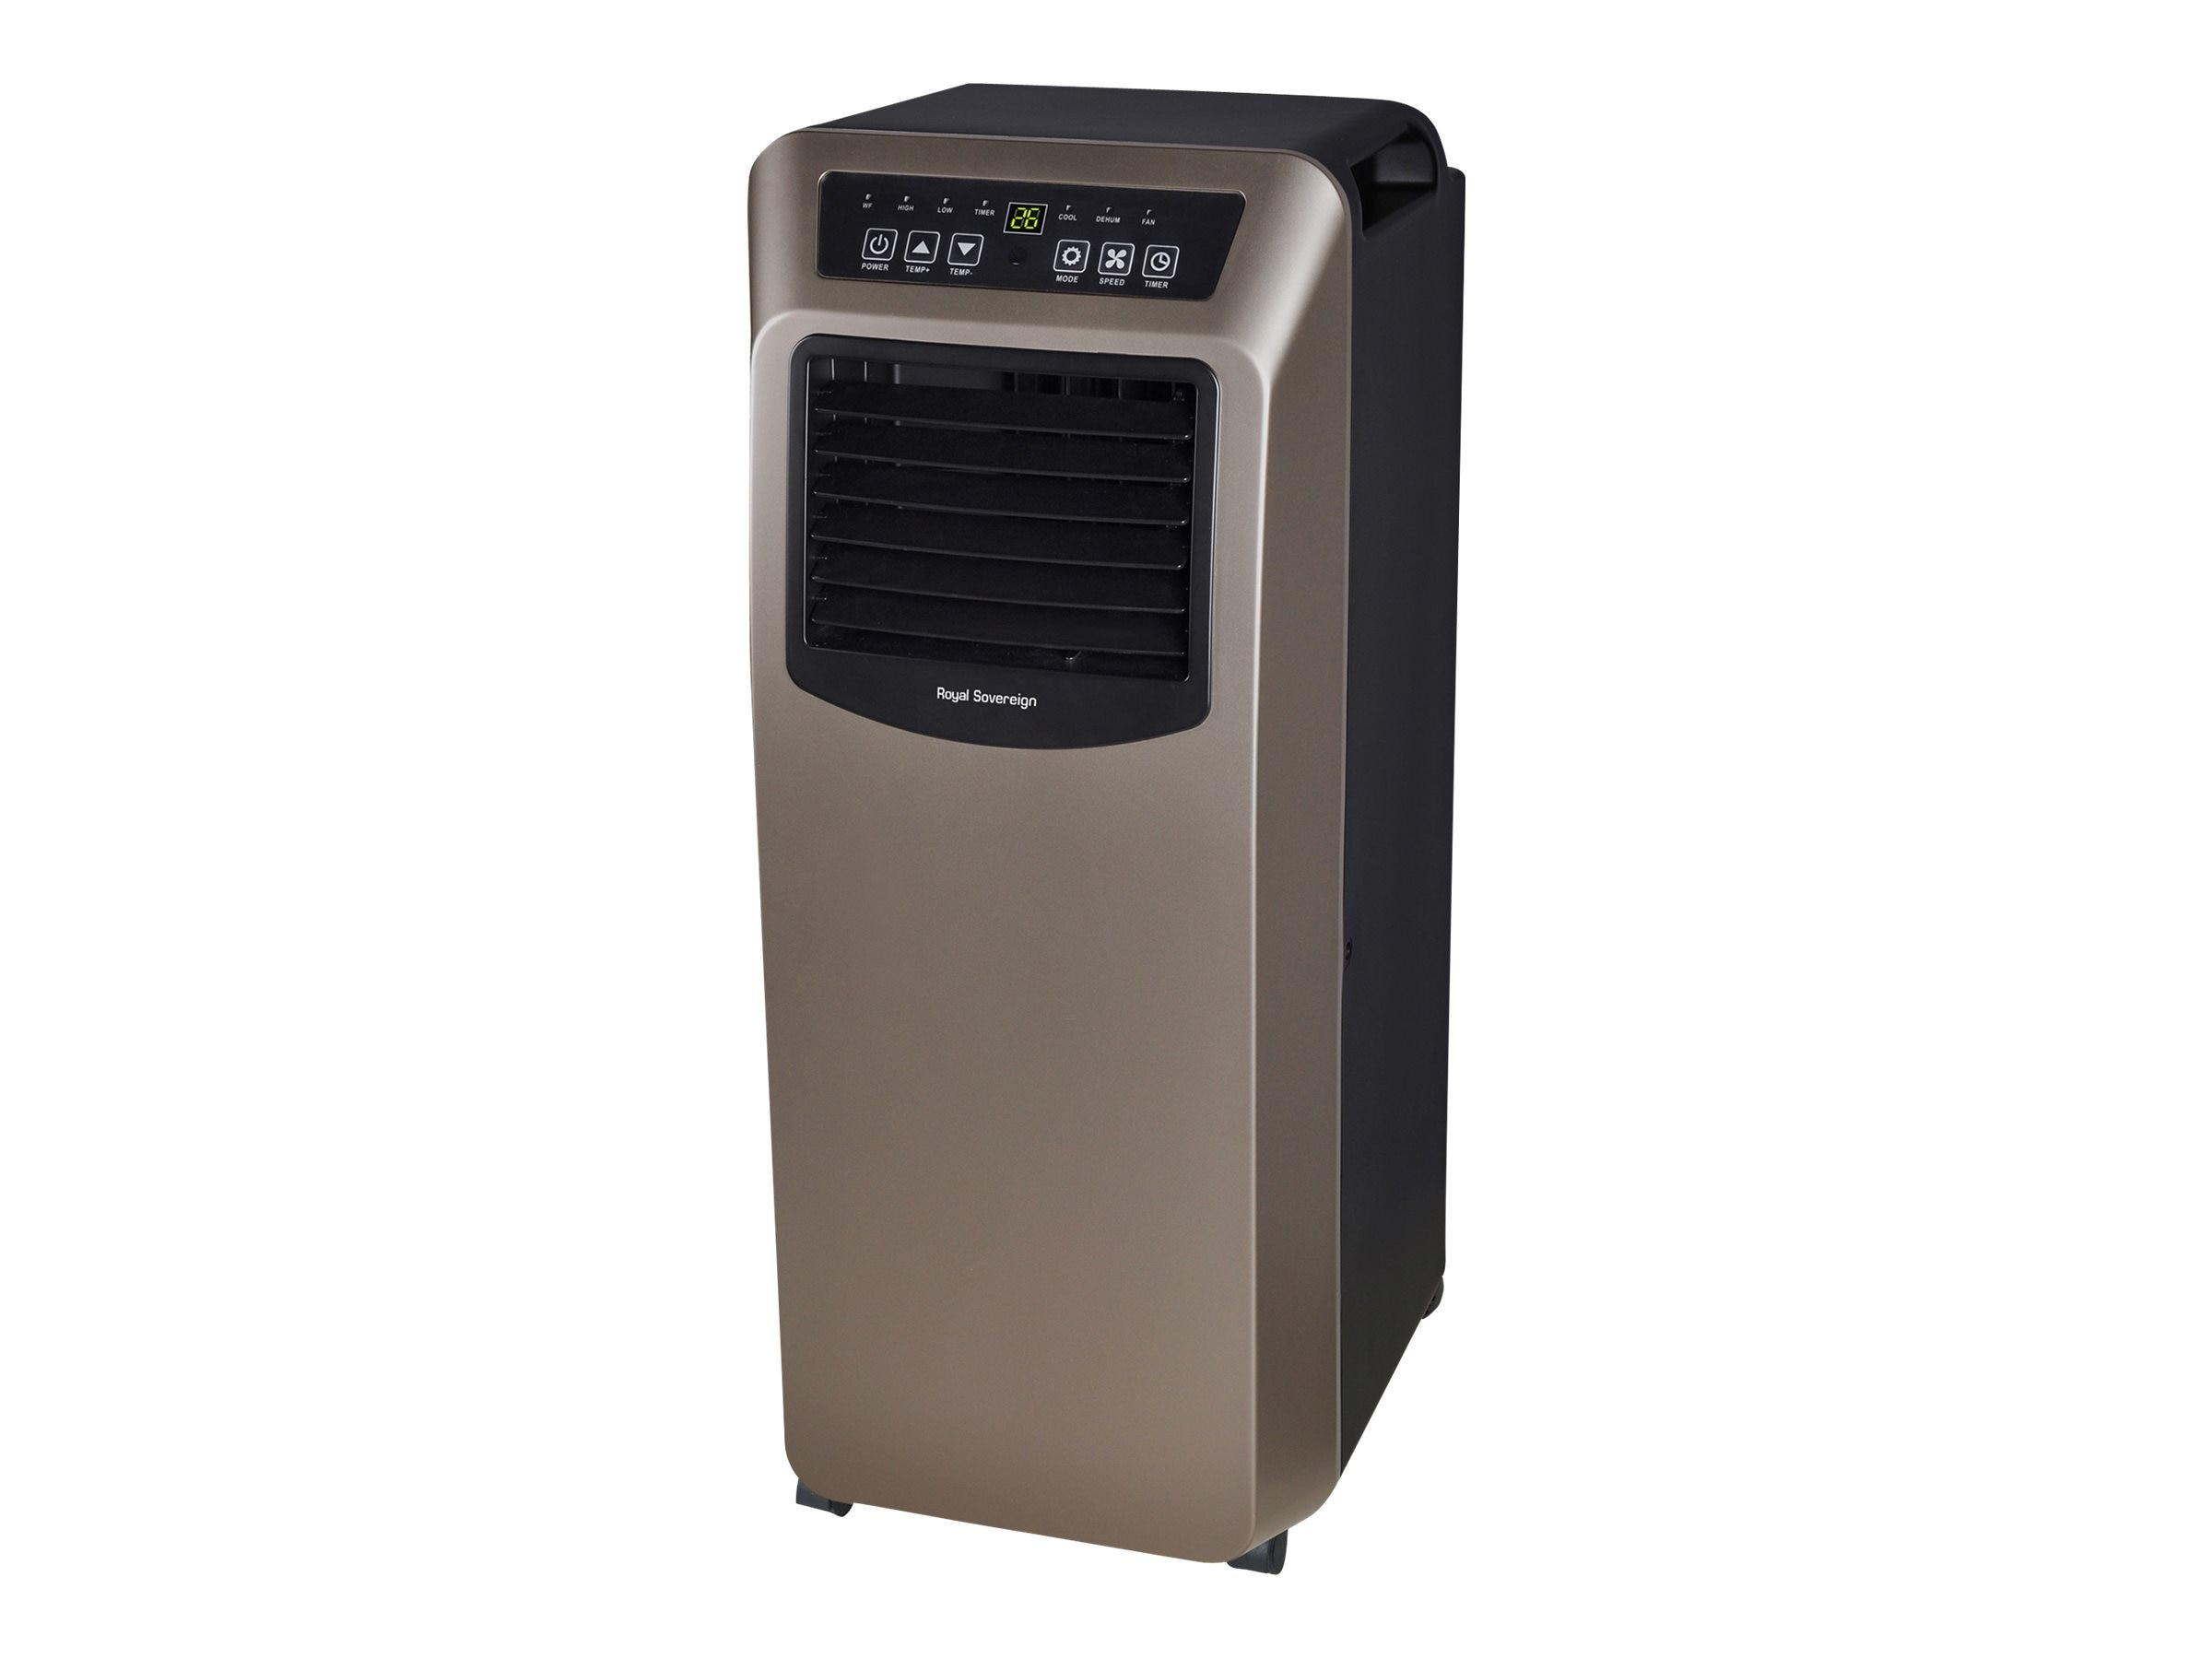 Royal Sovereign Slim 3-in-1 14000 BTU Portable Air Conditioner